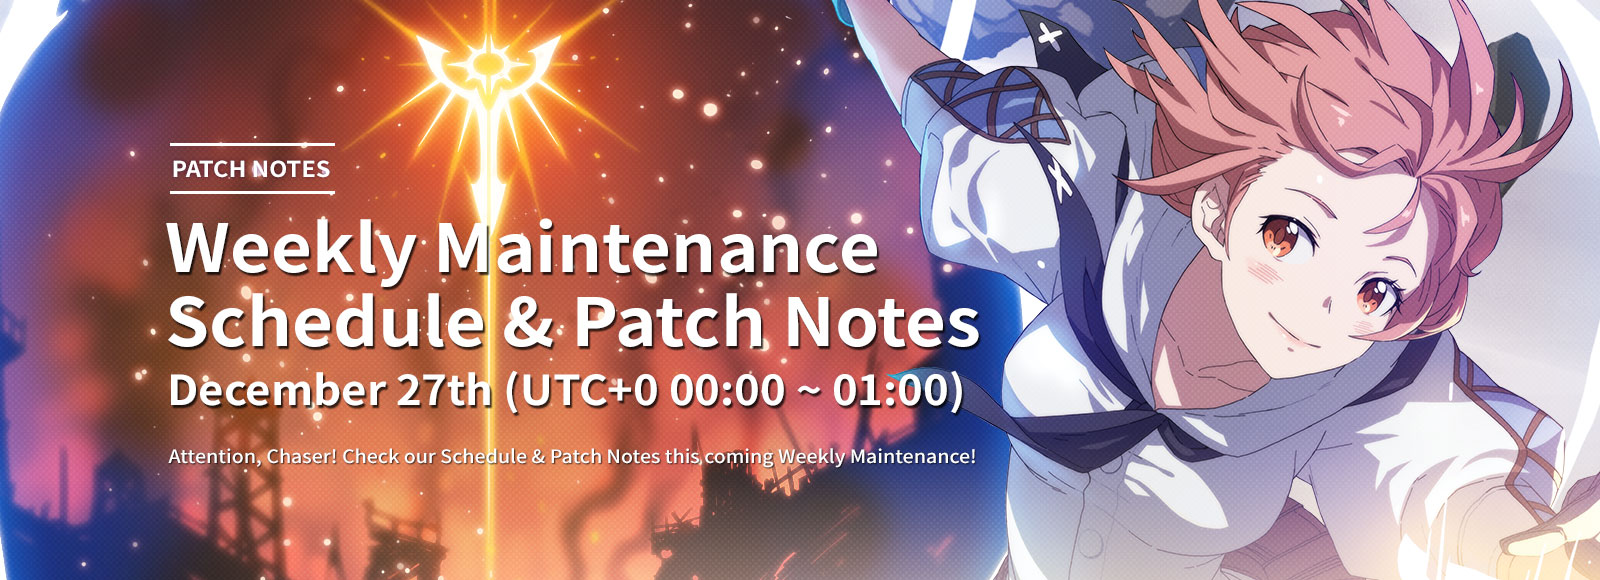 December 27th Weekly Maintenance Schedule & Patch Notes